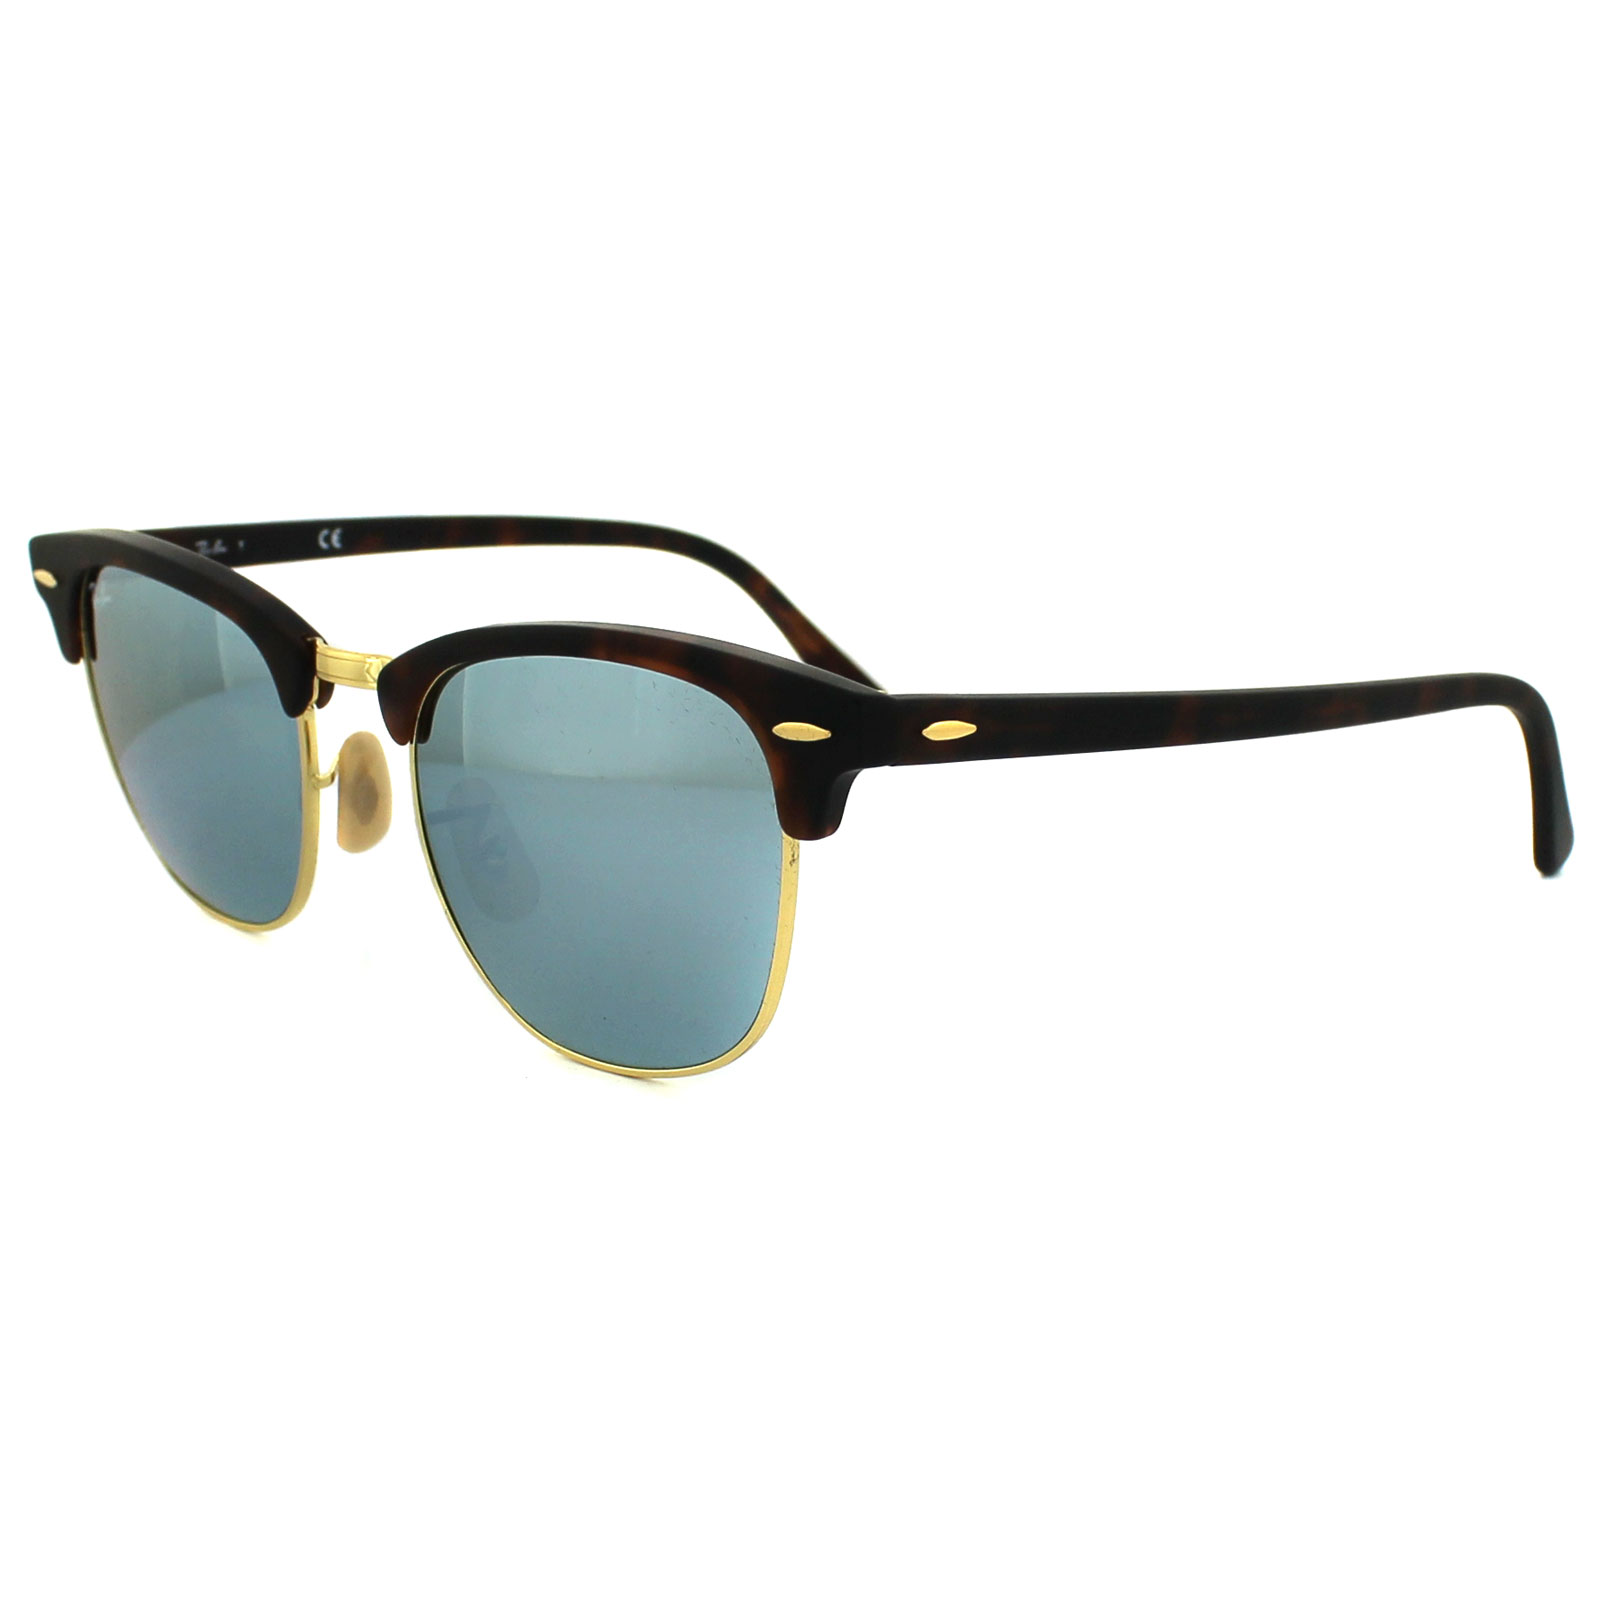 Ray-Ban RB3016 Sonnenbrille Tortoise / Gold 114530 51mm 5cE9zUbS